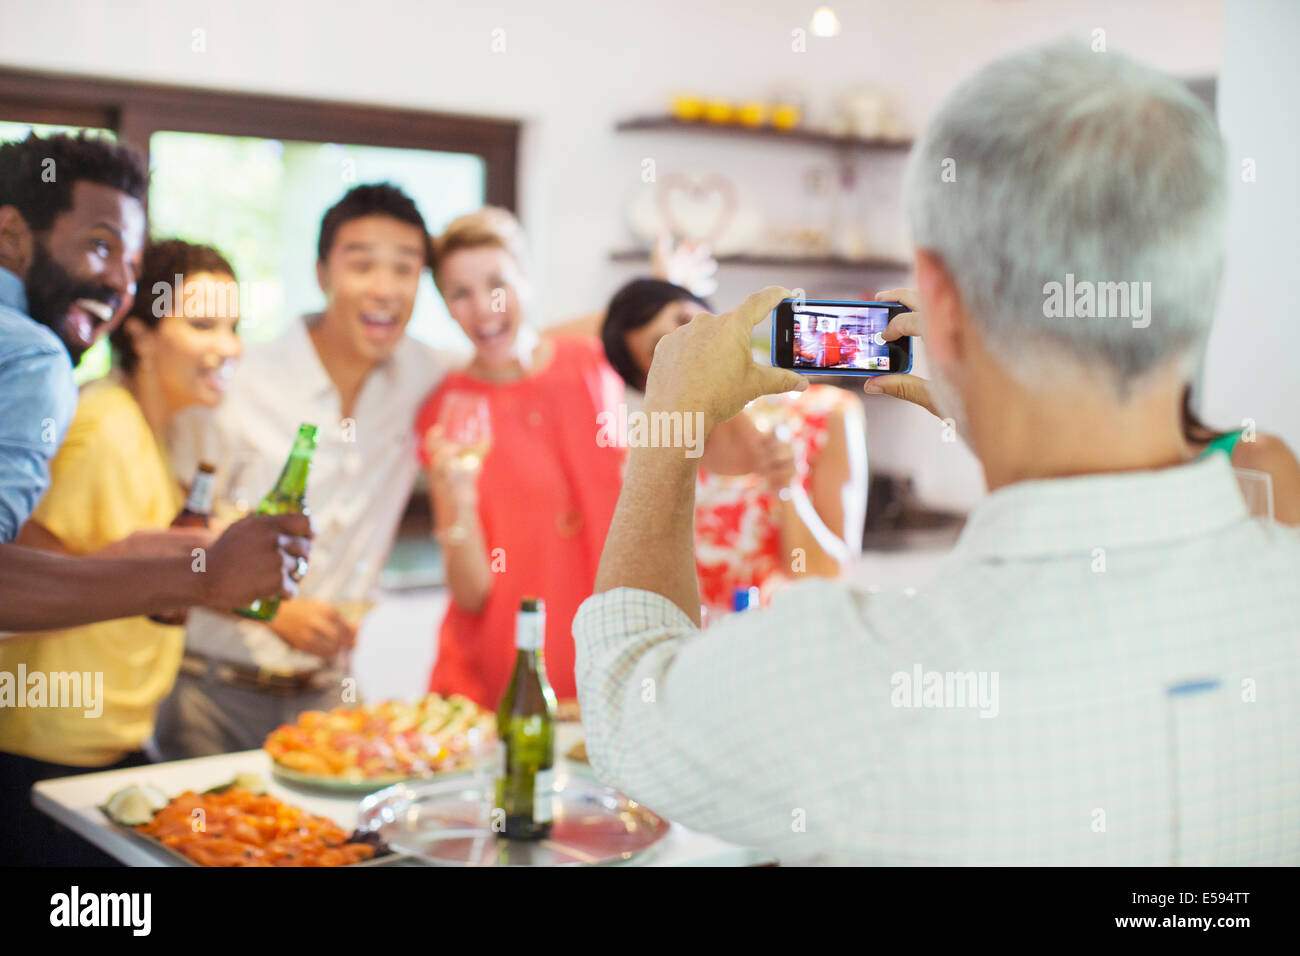 Friends taking picture together at party Stock Photo